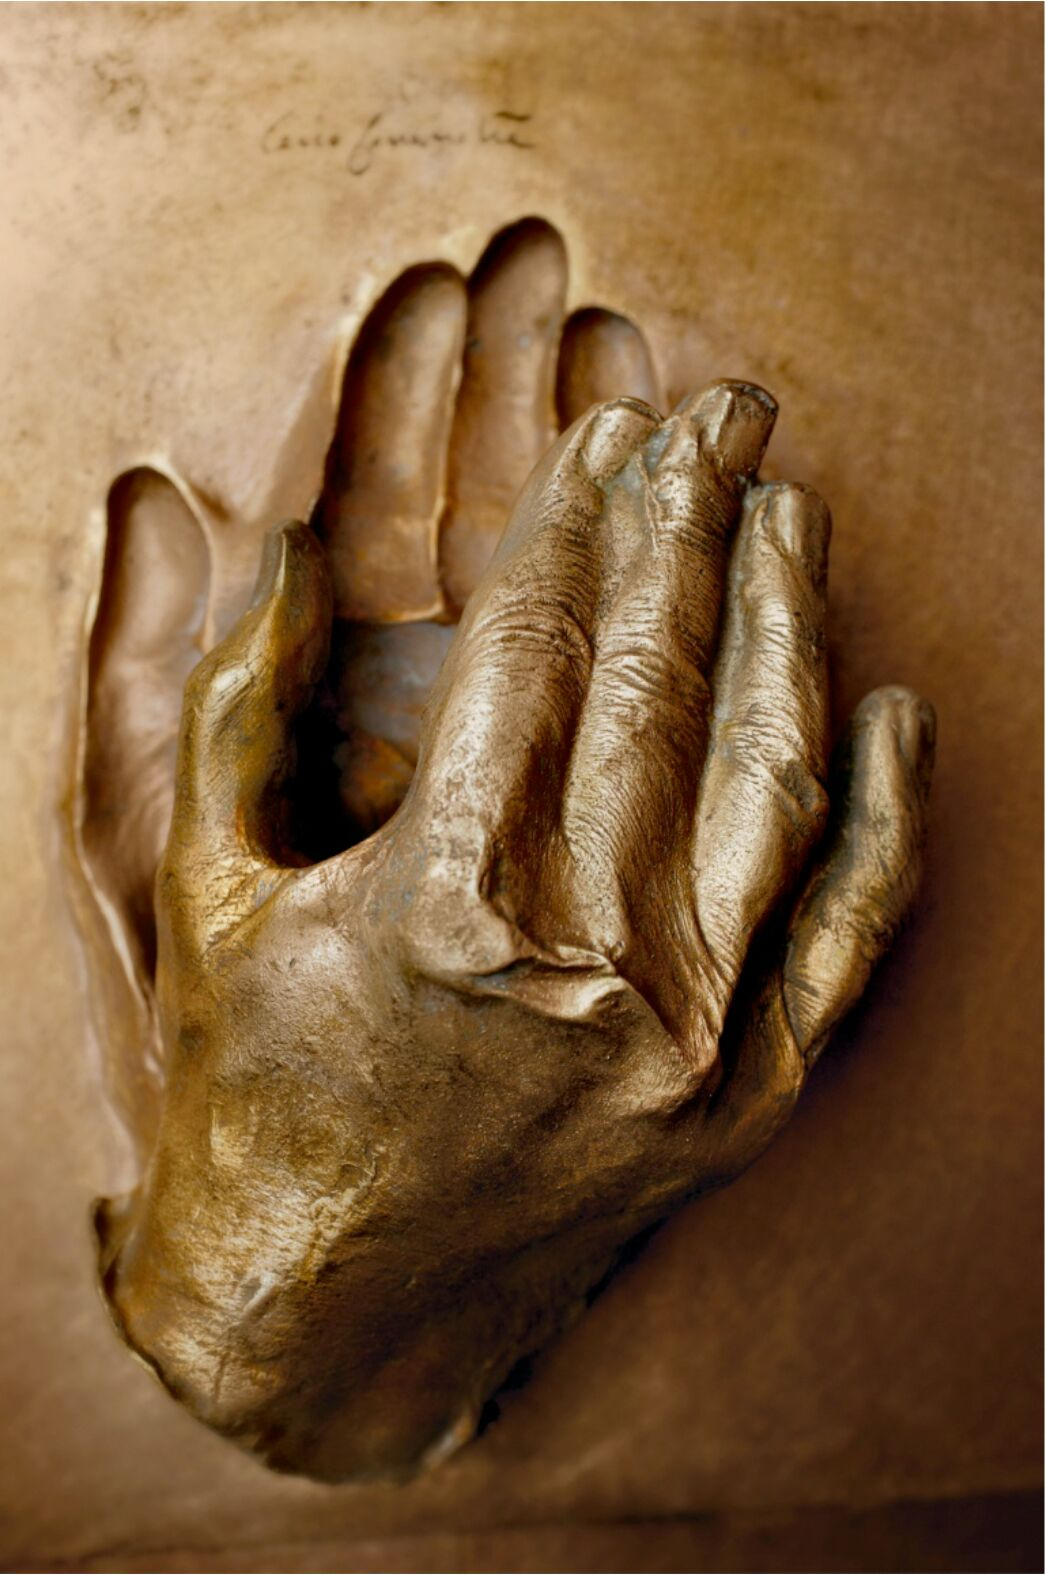 Cast of the Hand of Blessed John Paul II, Pope(Photo copyright 2015 © Città del Vaticano)